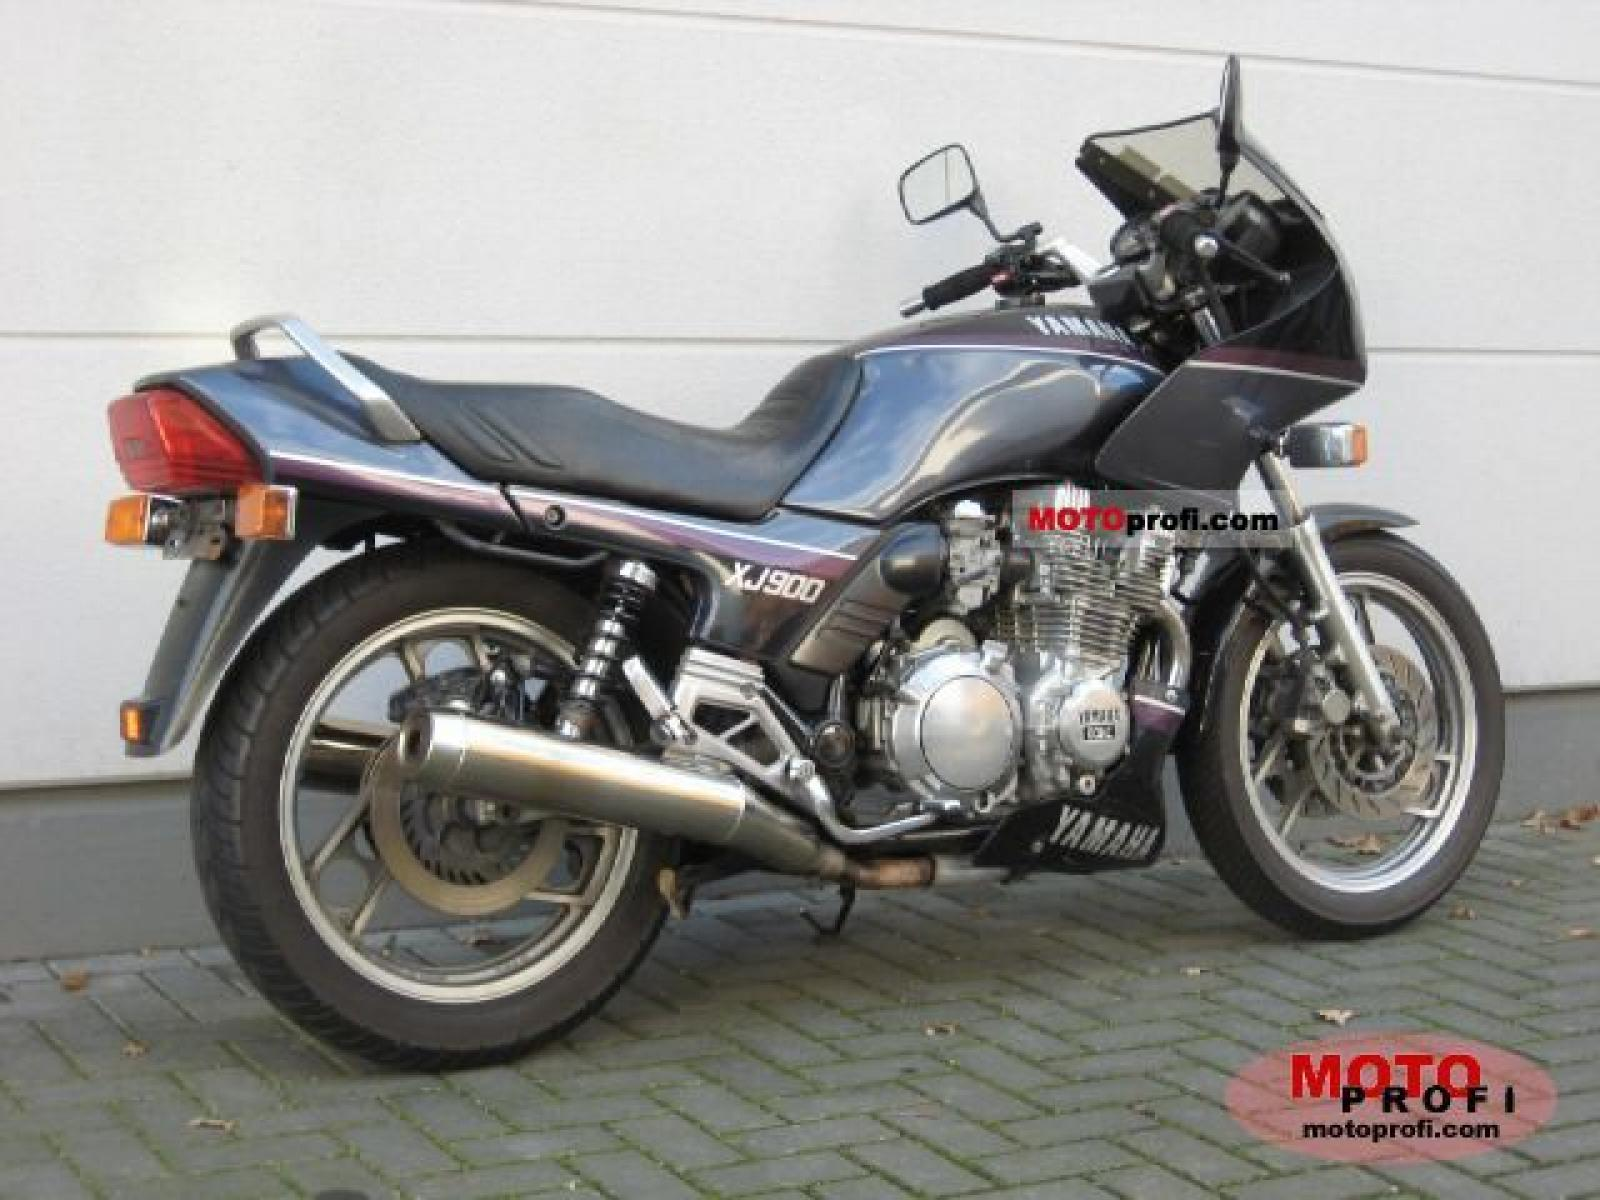 1992 Yamaha XJ 600 S Diversion (reduced effect) #1